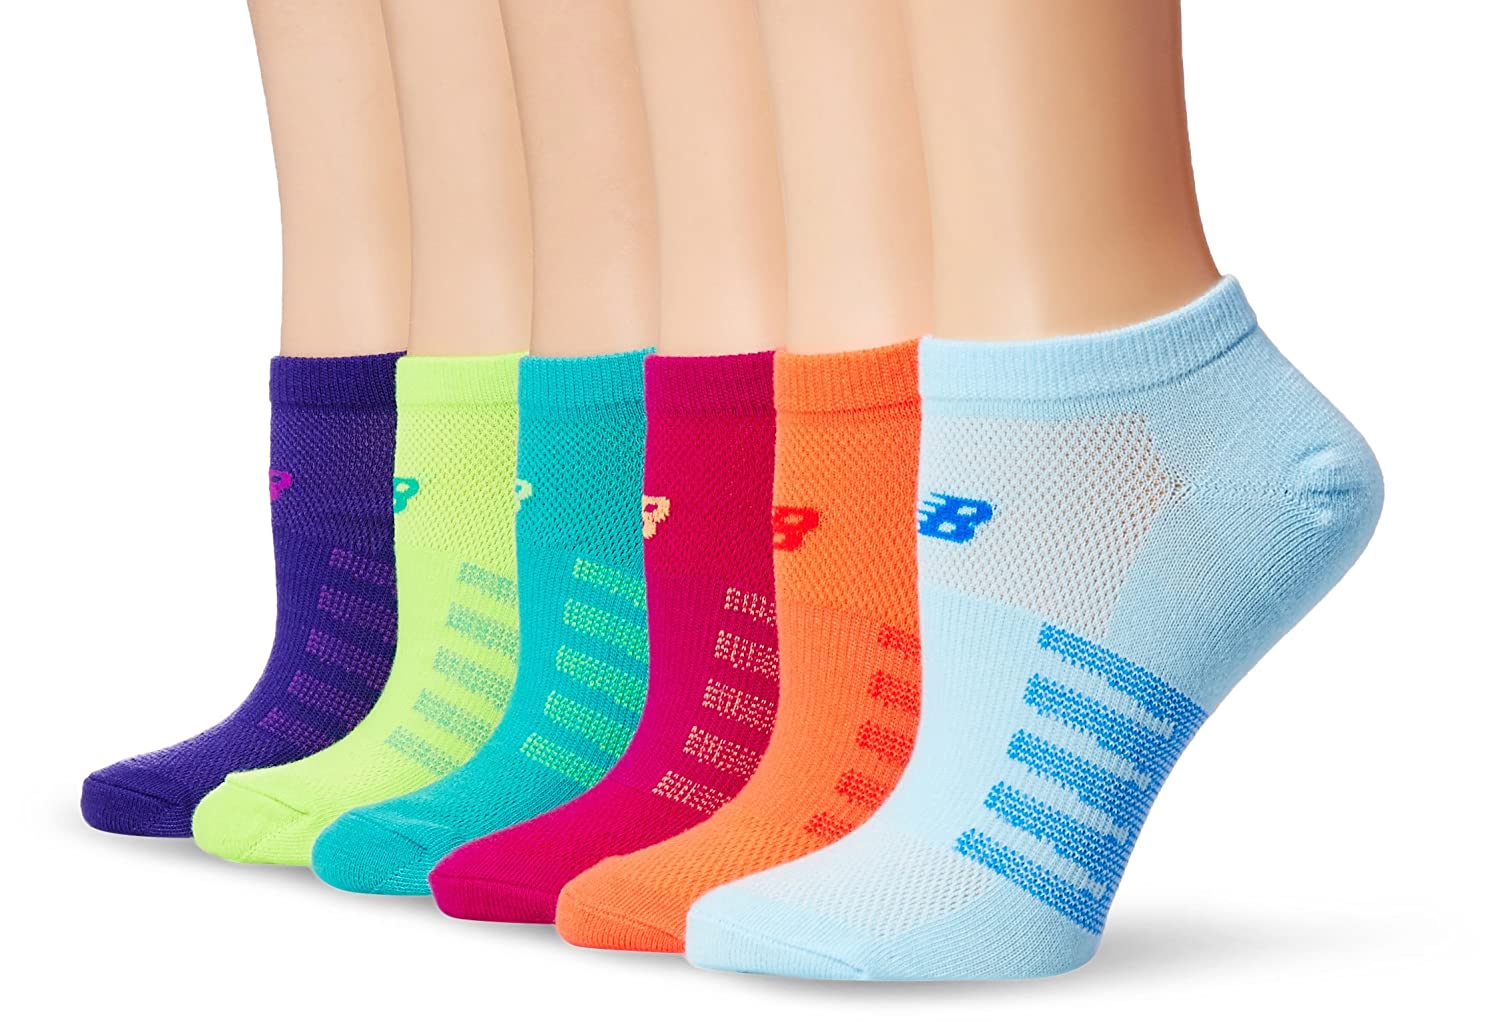 New Balance Womens Arch Support No Show Socks 6 Pack